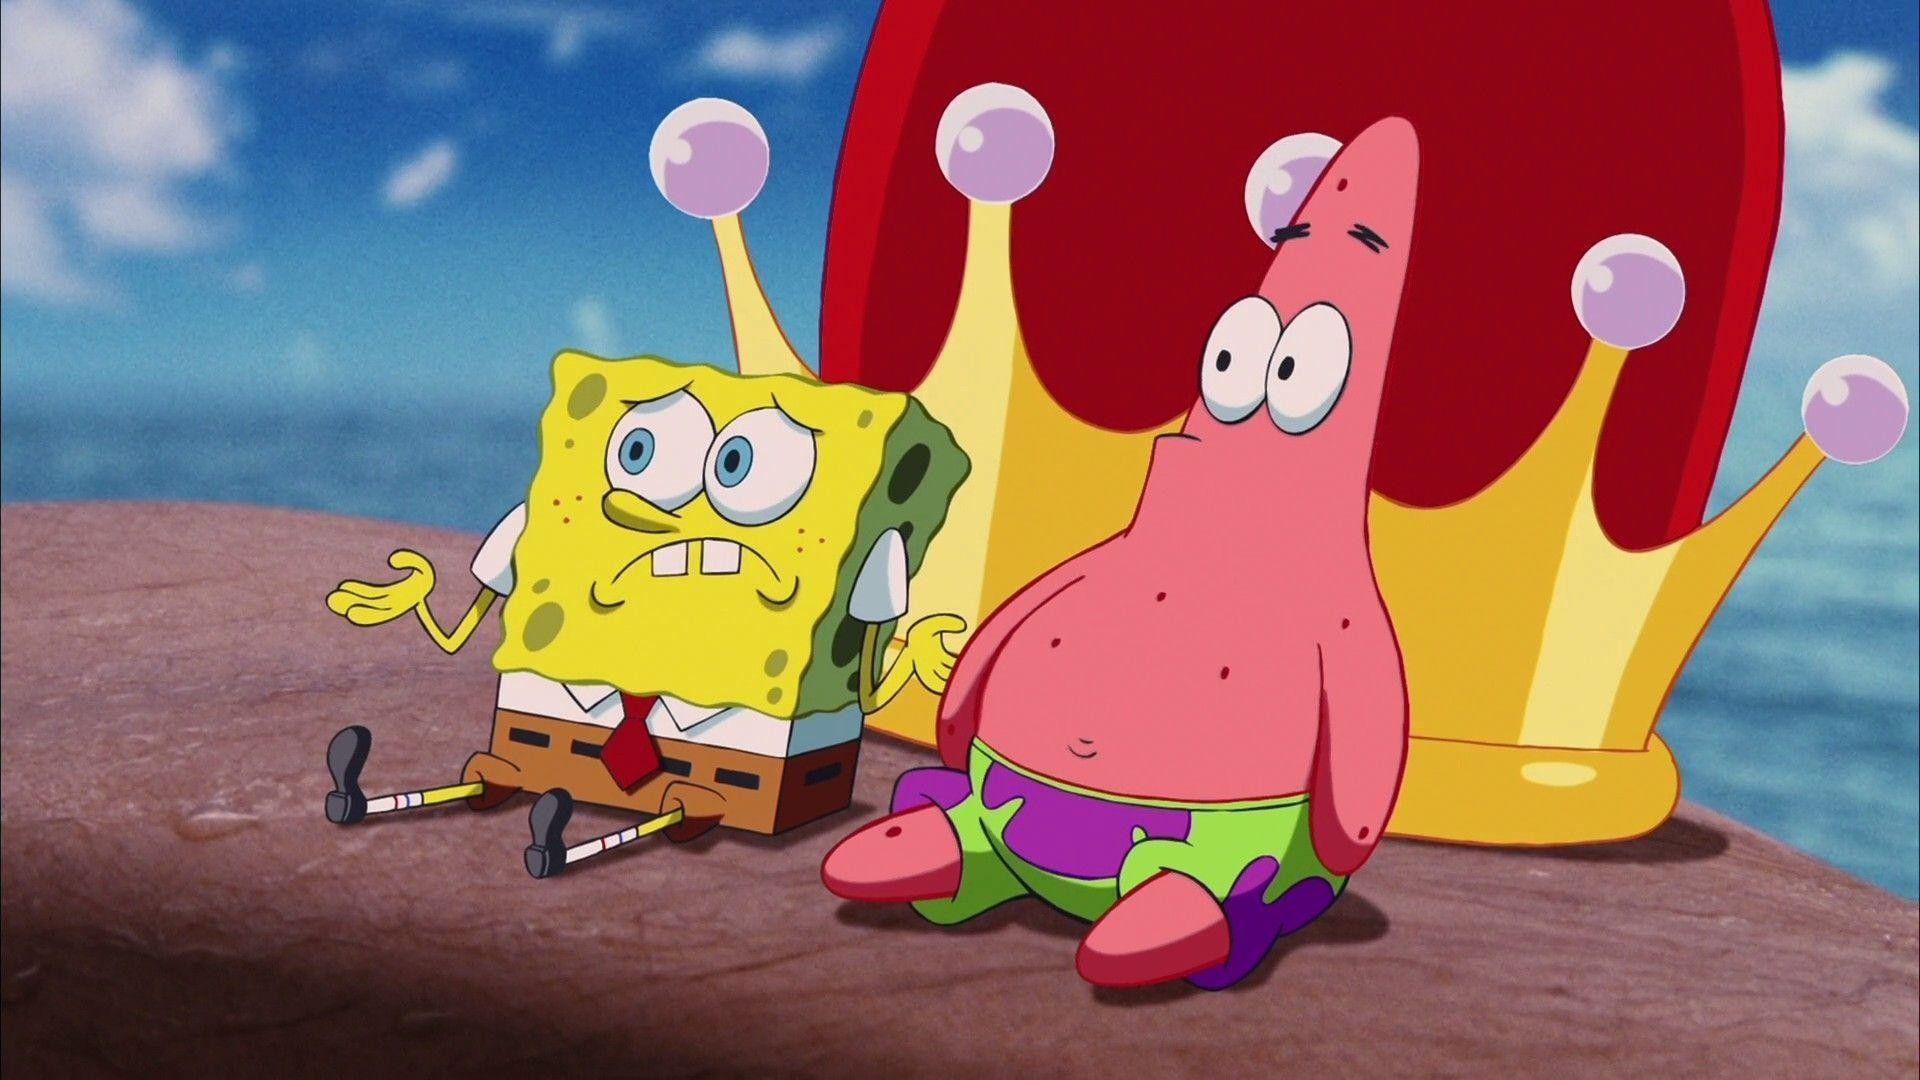 1920x1080 80 Spongebob Squarepants HD Wallpapers | Backgrounds - Wallpaper Abyss